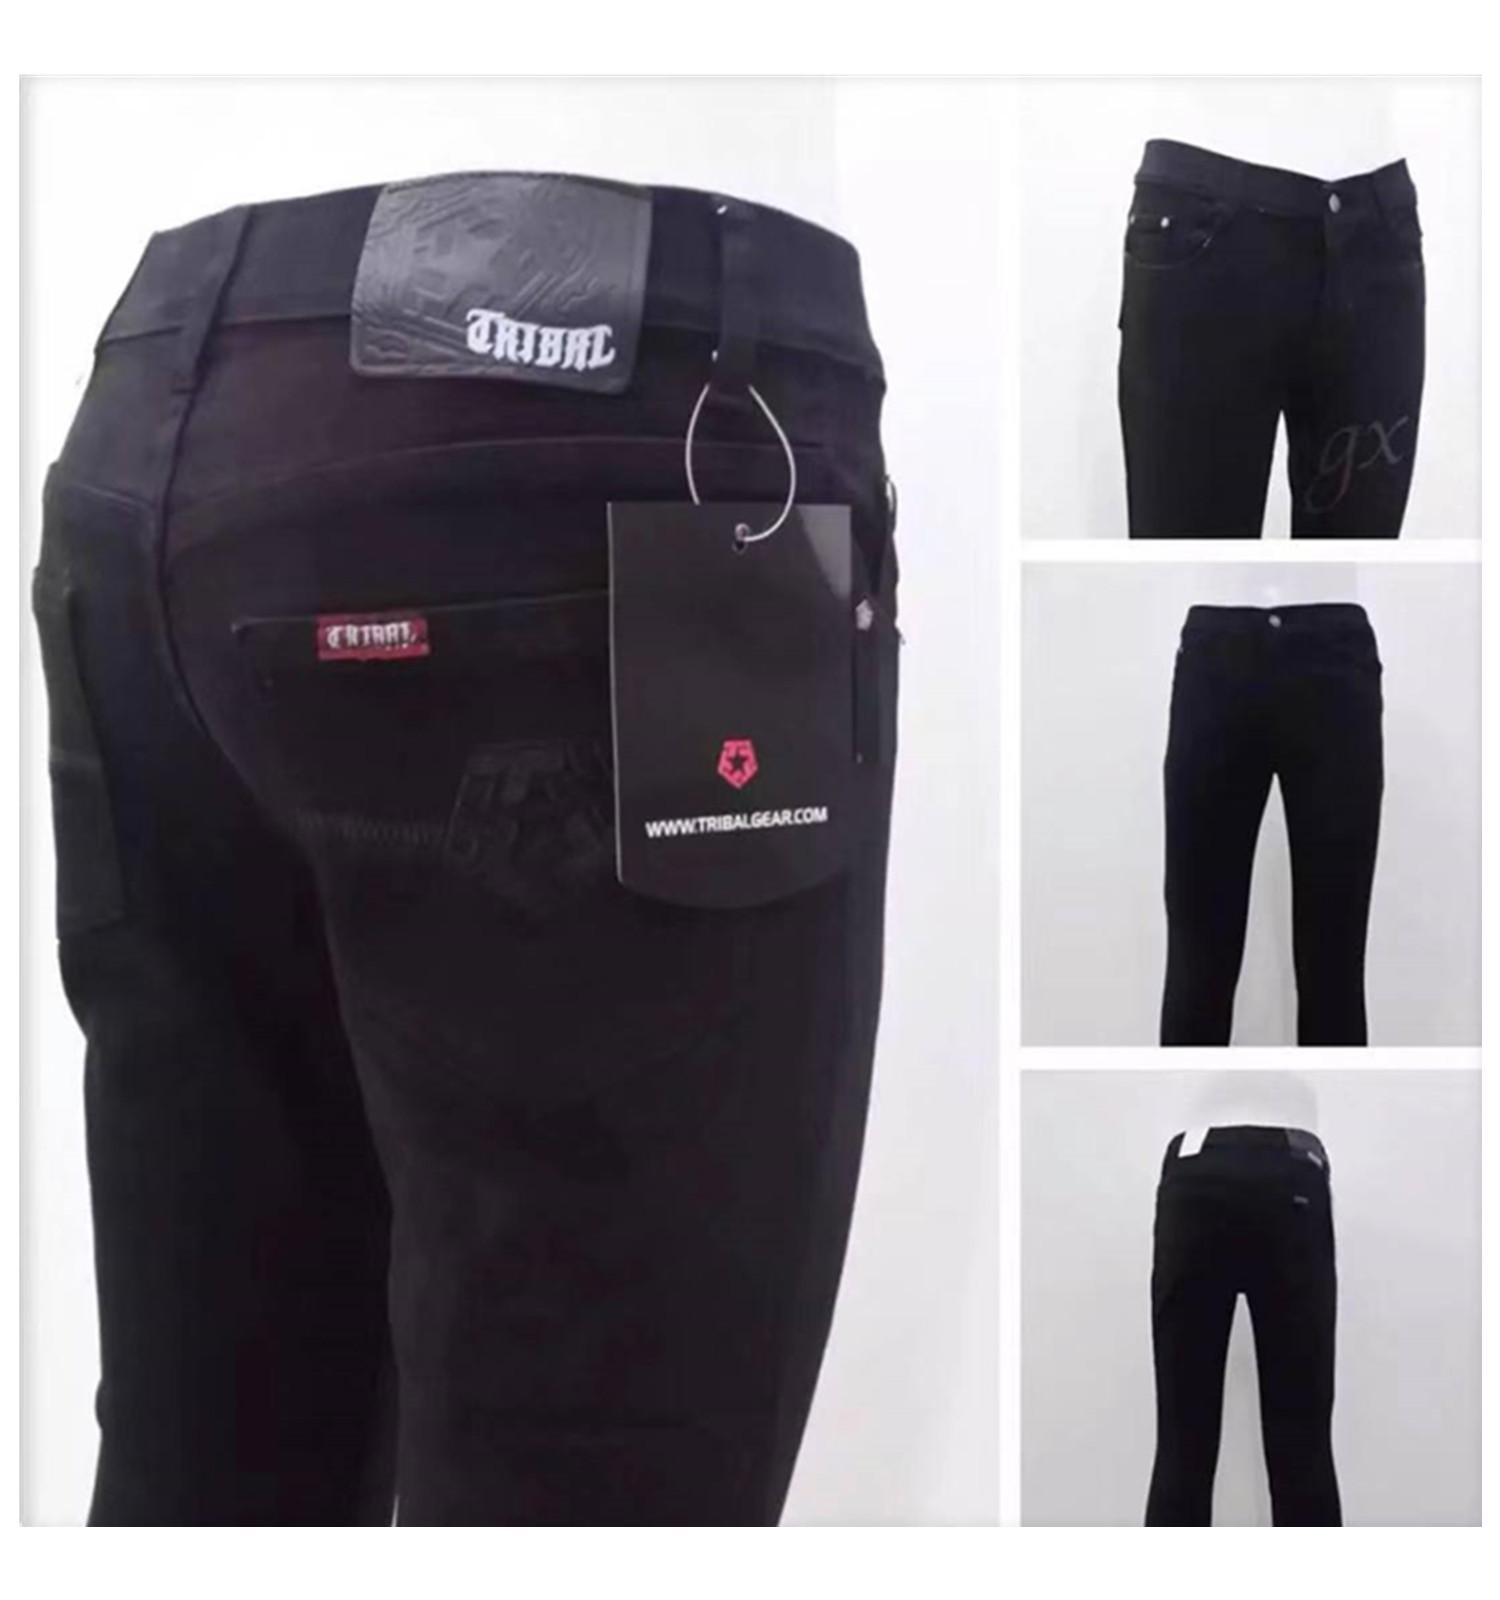 310e51e2d78 Sk Fashion Mens Black strach Skinny jeans, Comfortable, Trendy Jeans Pants